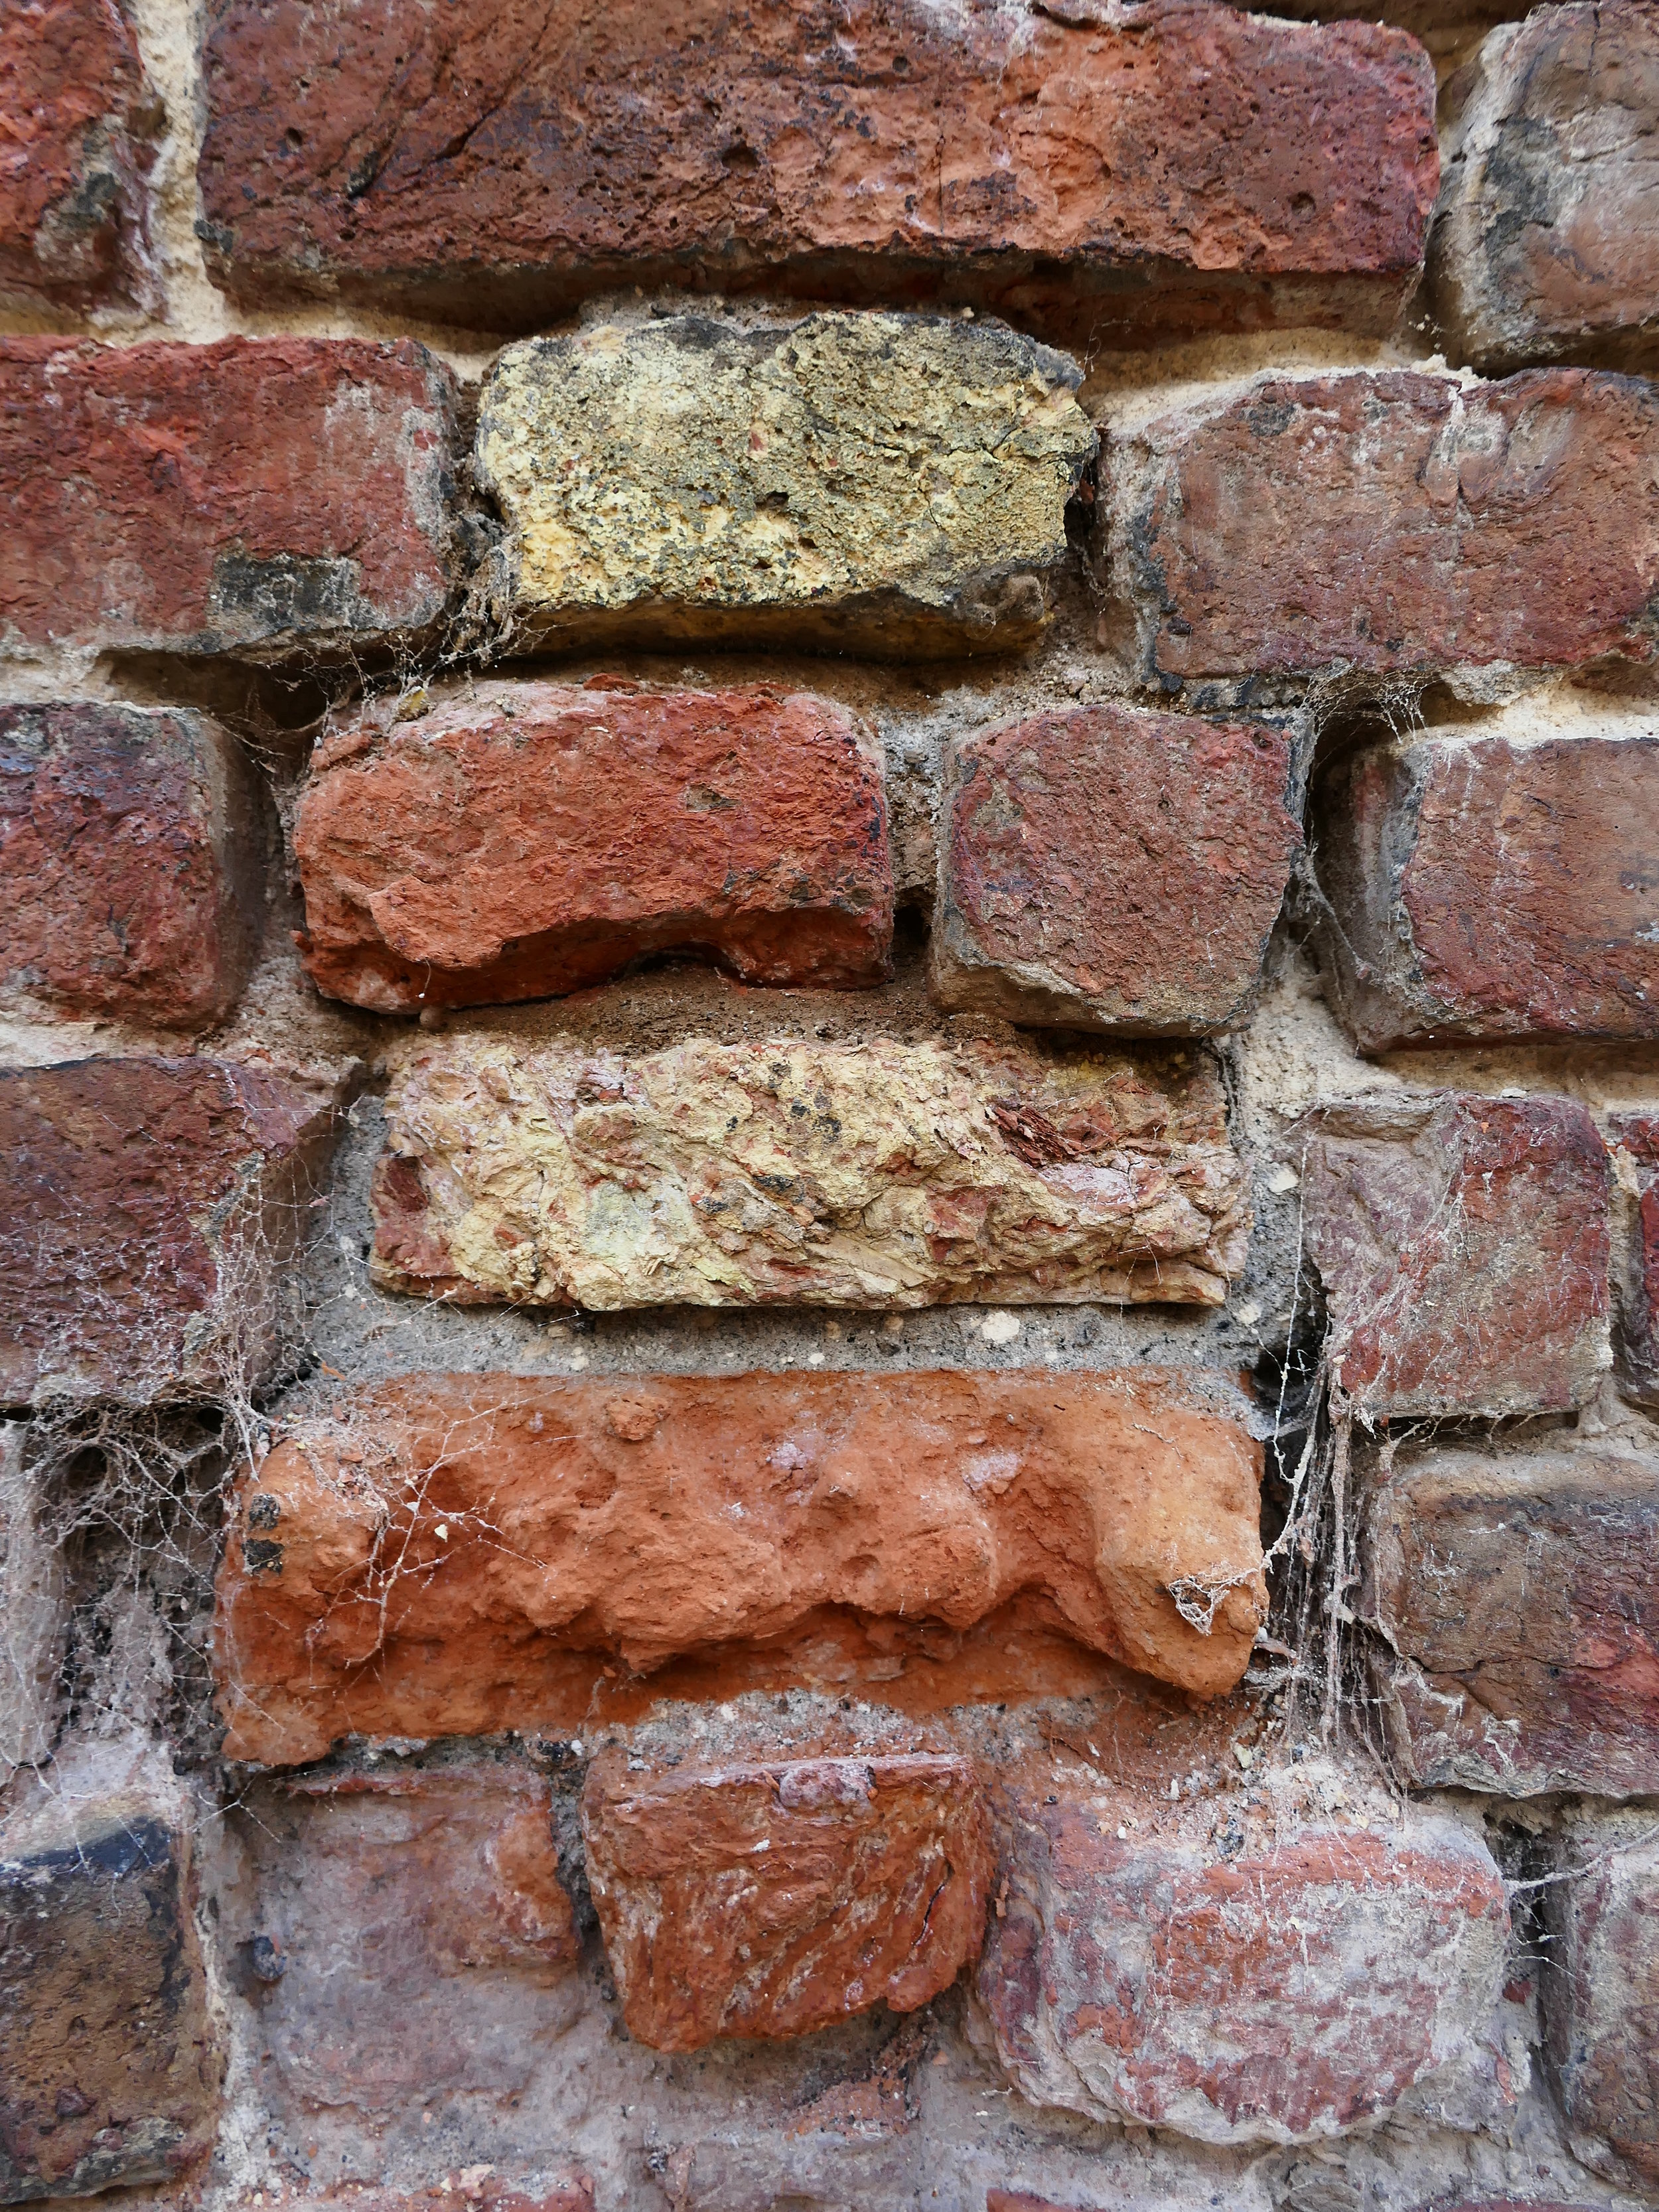 The temperature and length of time of firing, determine the durability and colour of the brick.